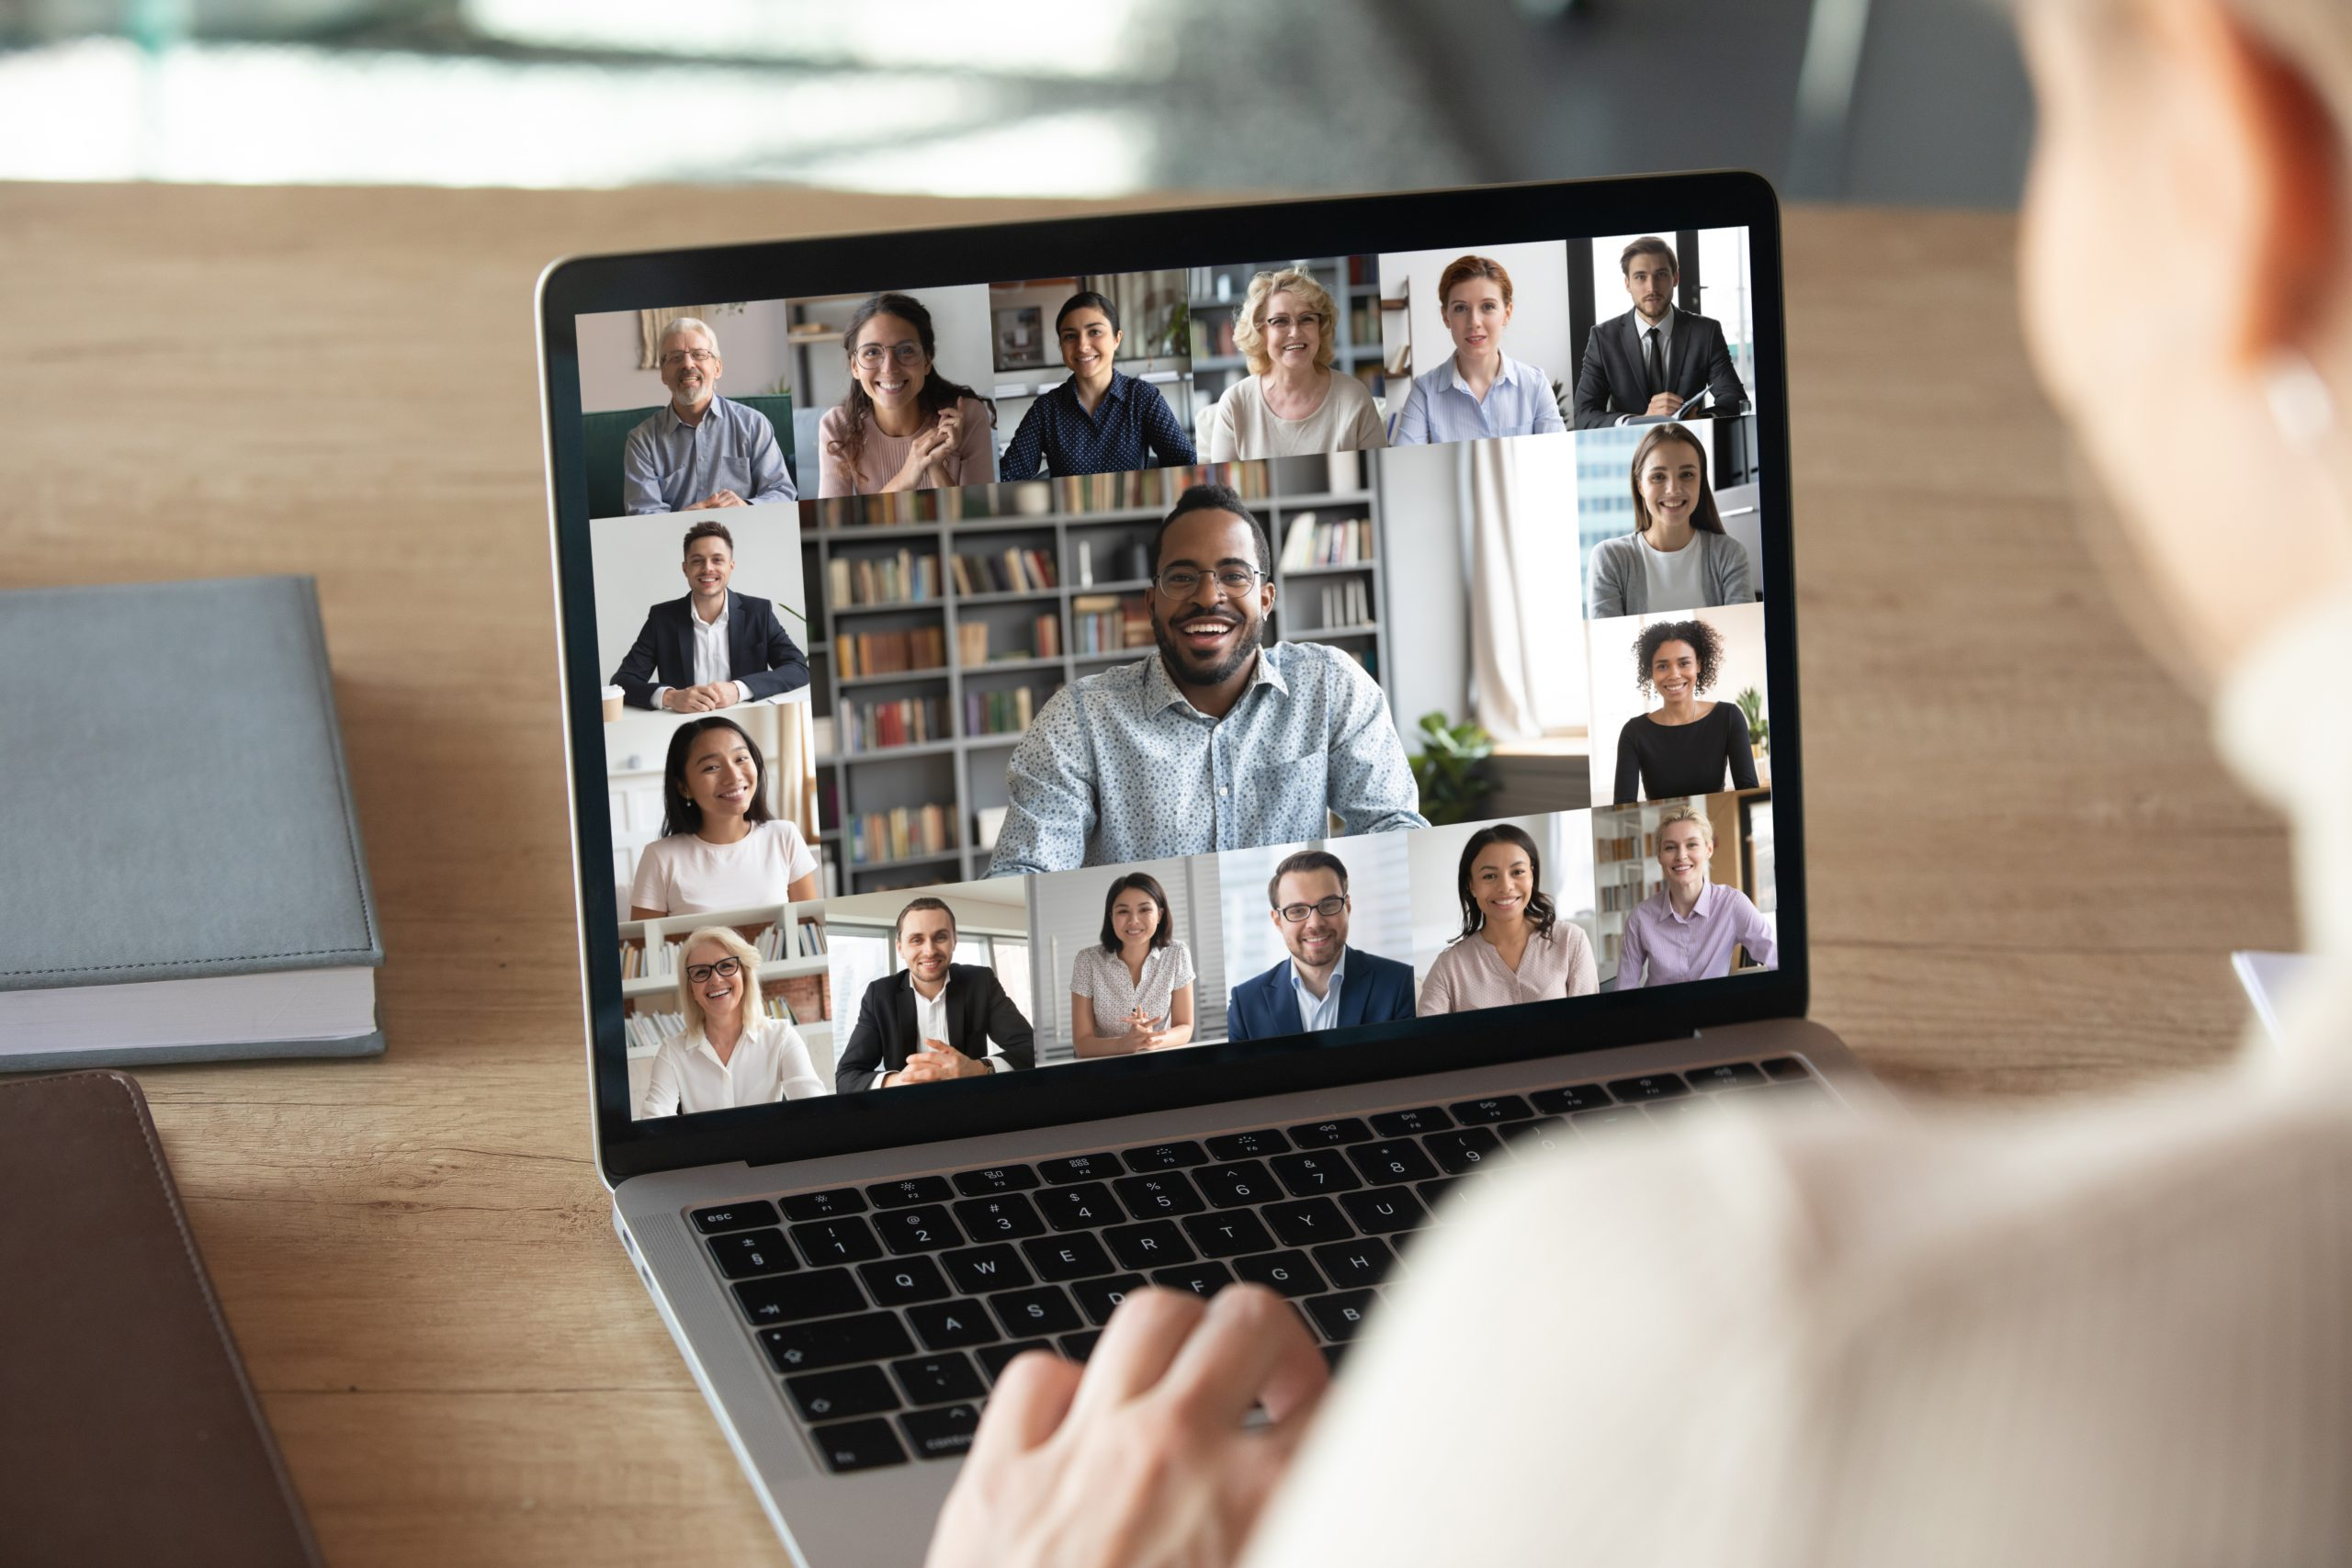 A business team having an engaging and interactive virtual meeting